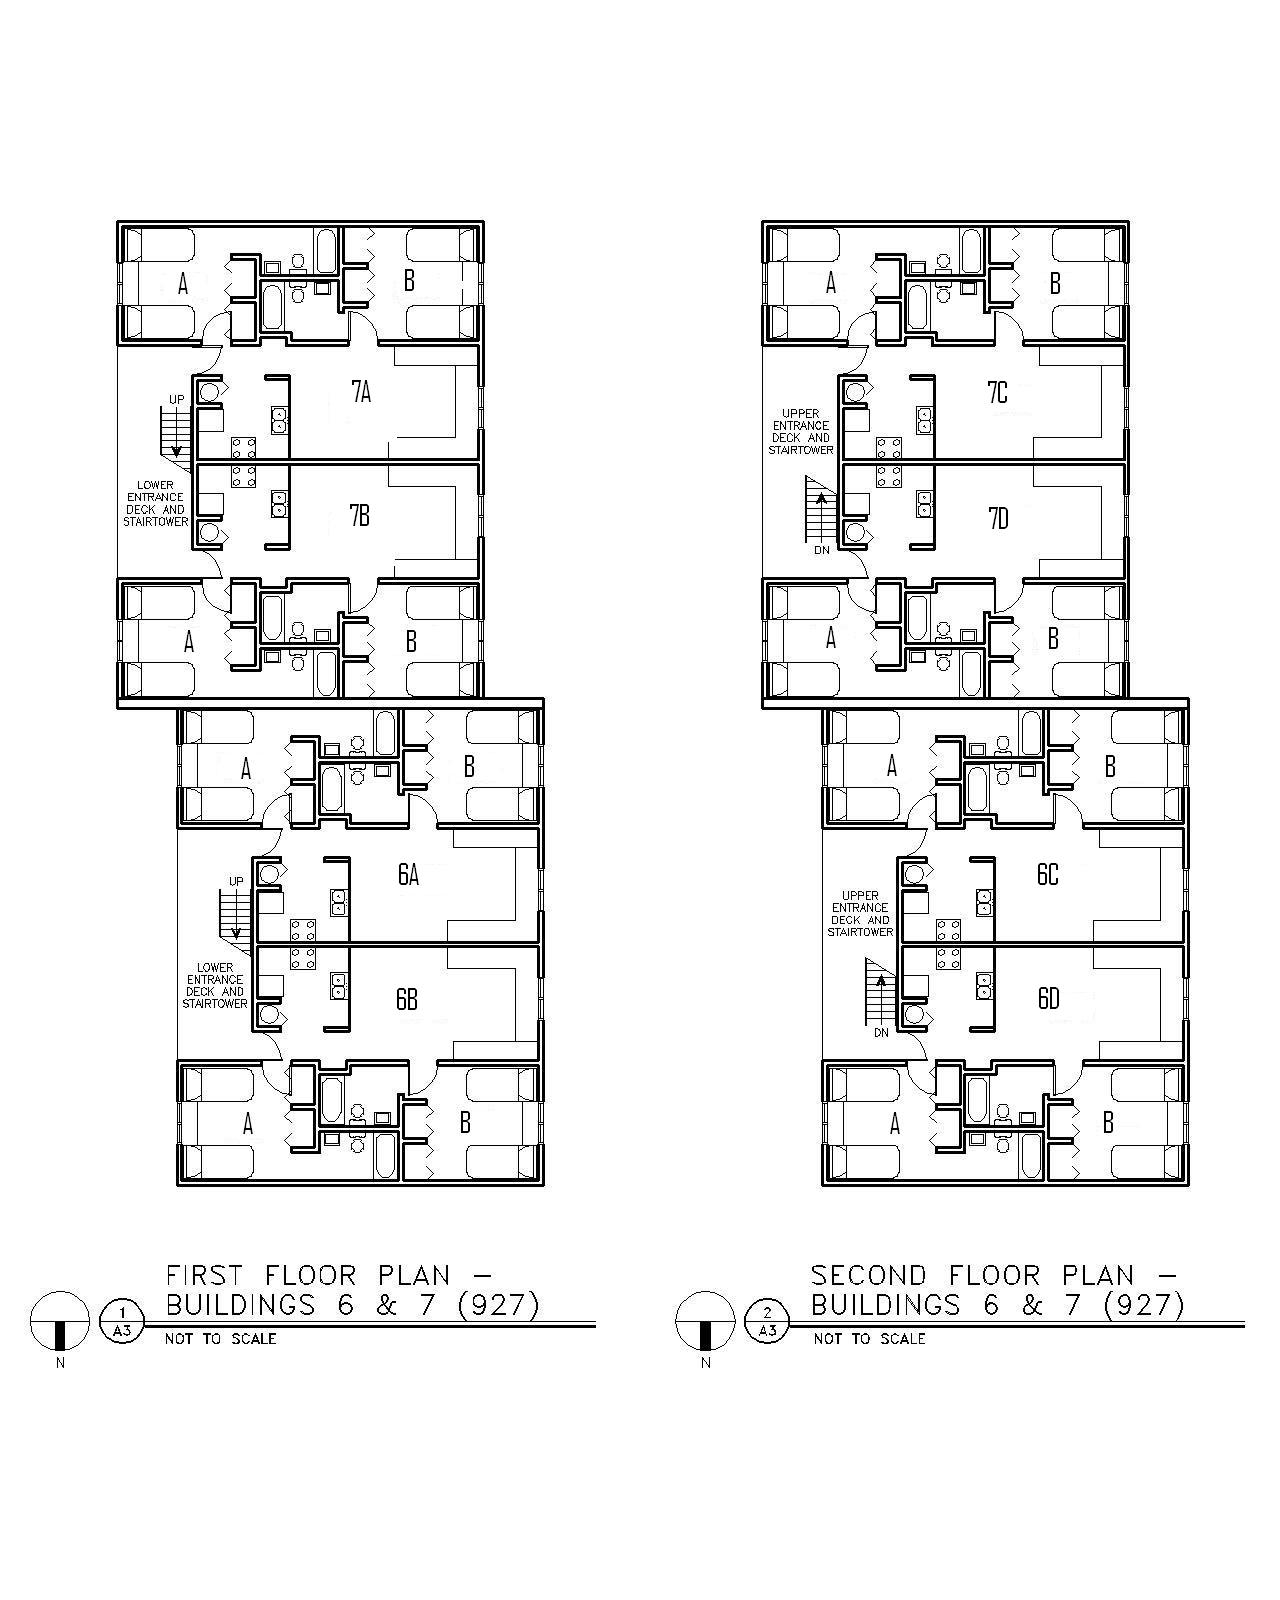 Floor Plan for Buildings 6 & 7